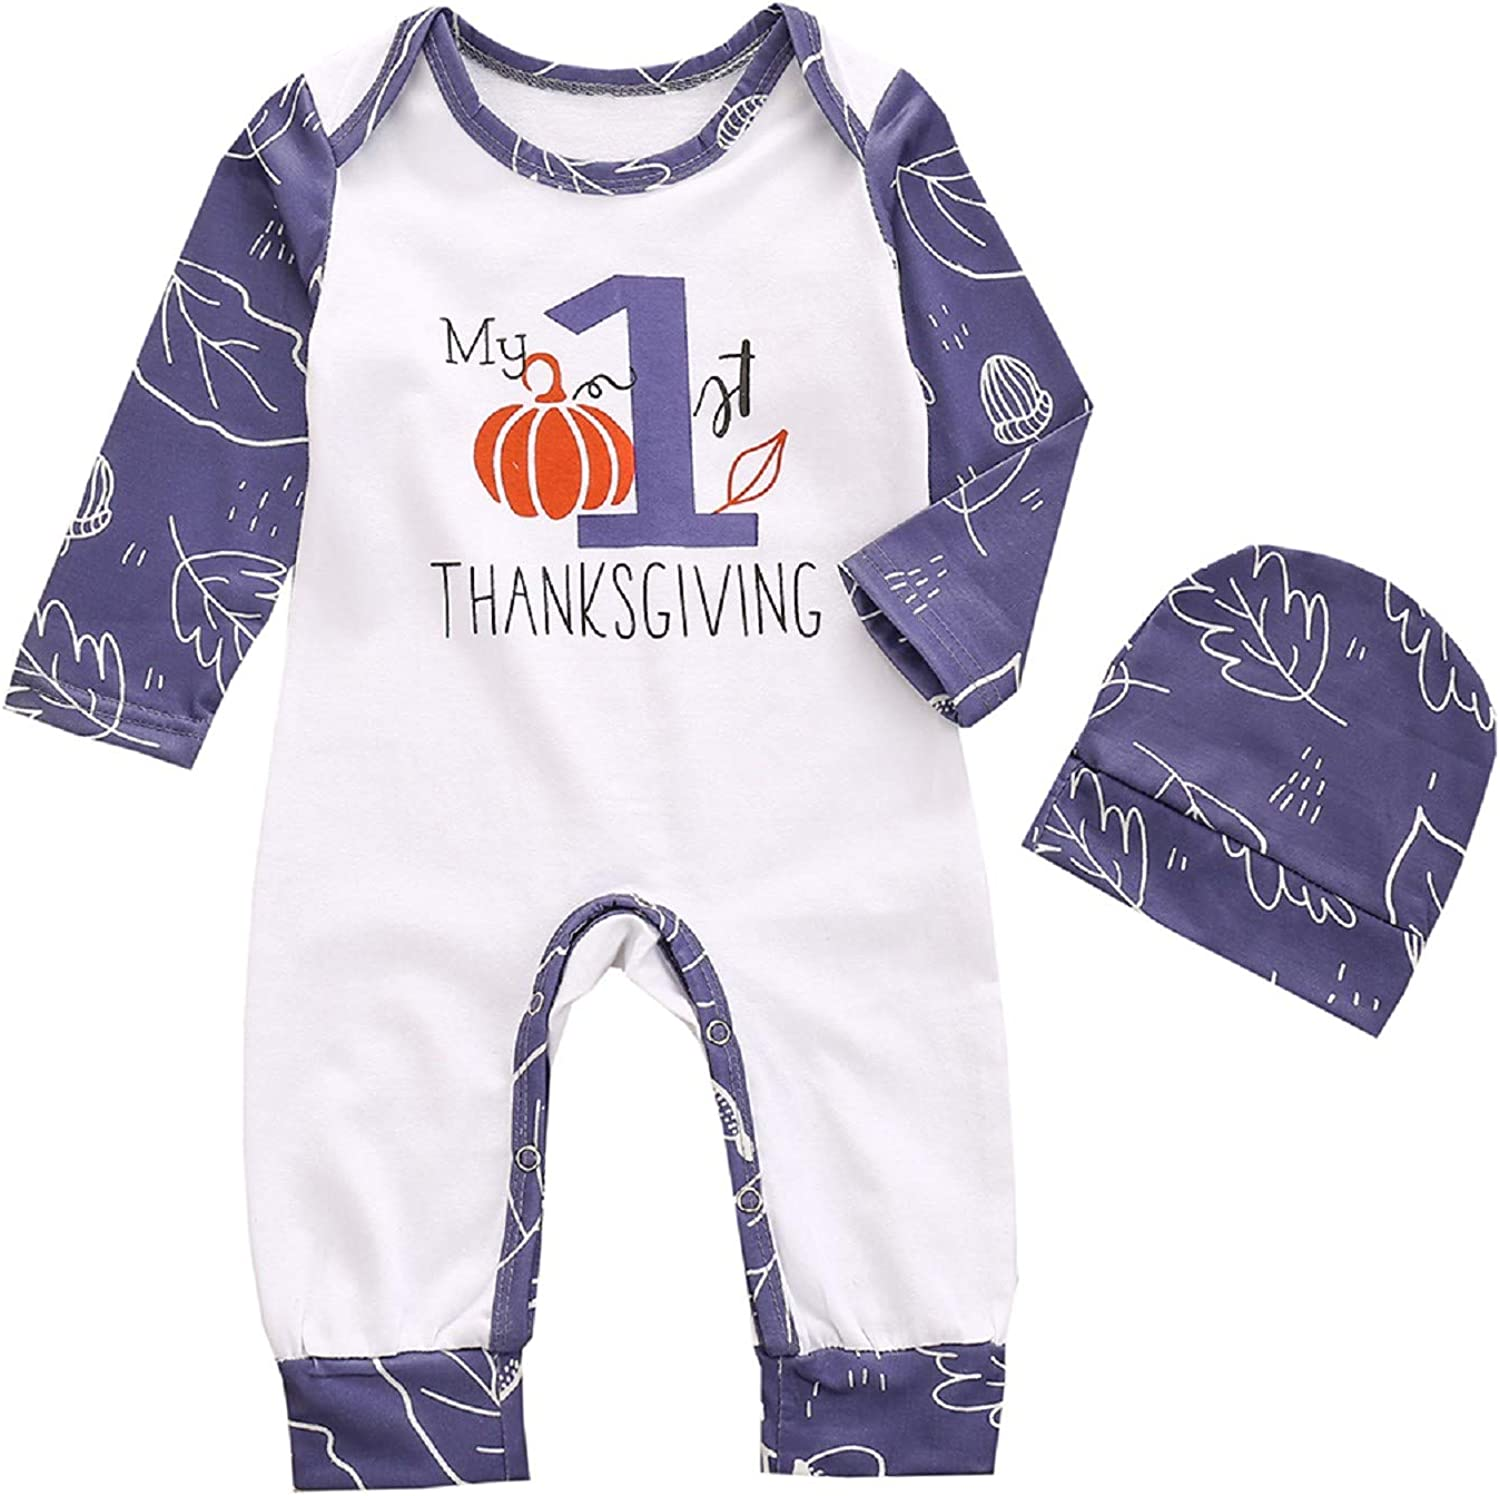 topseller-hzy 2 Pieces/Set 0-24M Baby and Toddler Thanksgiving Clothes Set, Long-Sleeved Romper+ Hat Casual Set